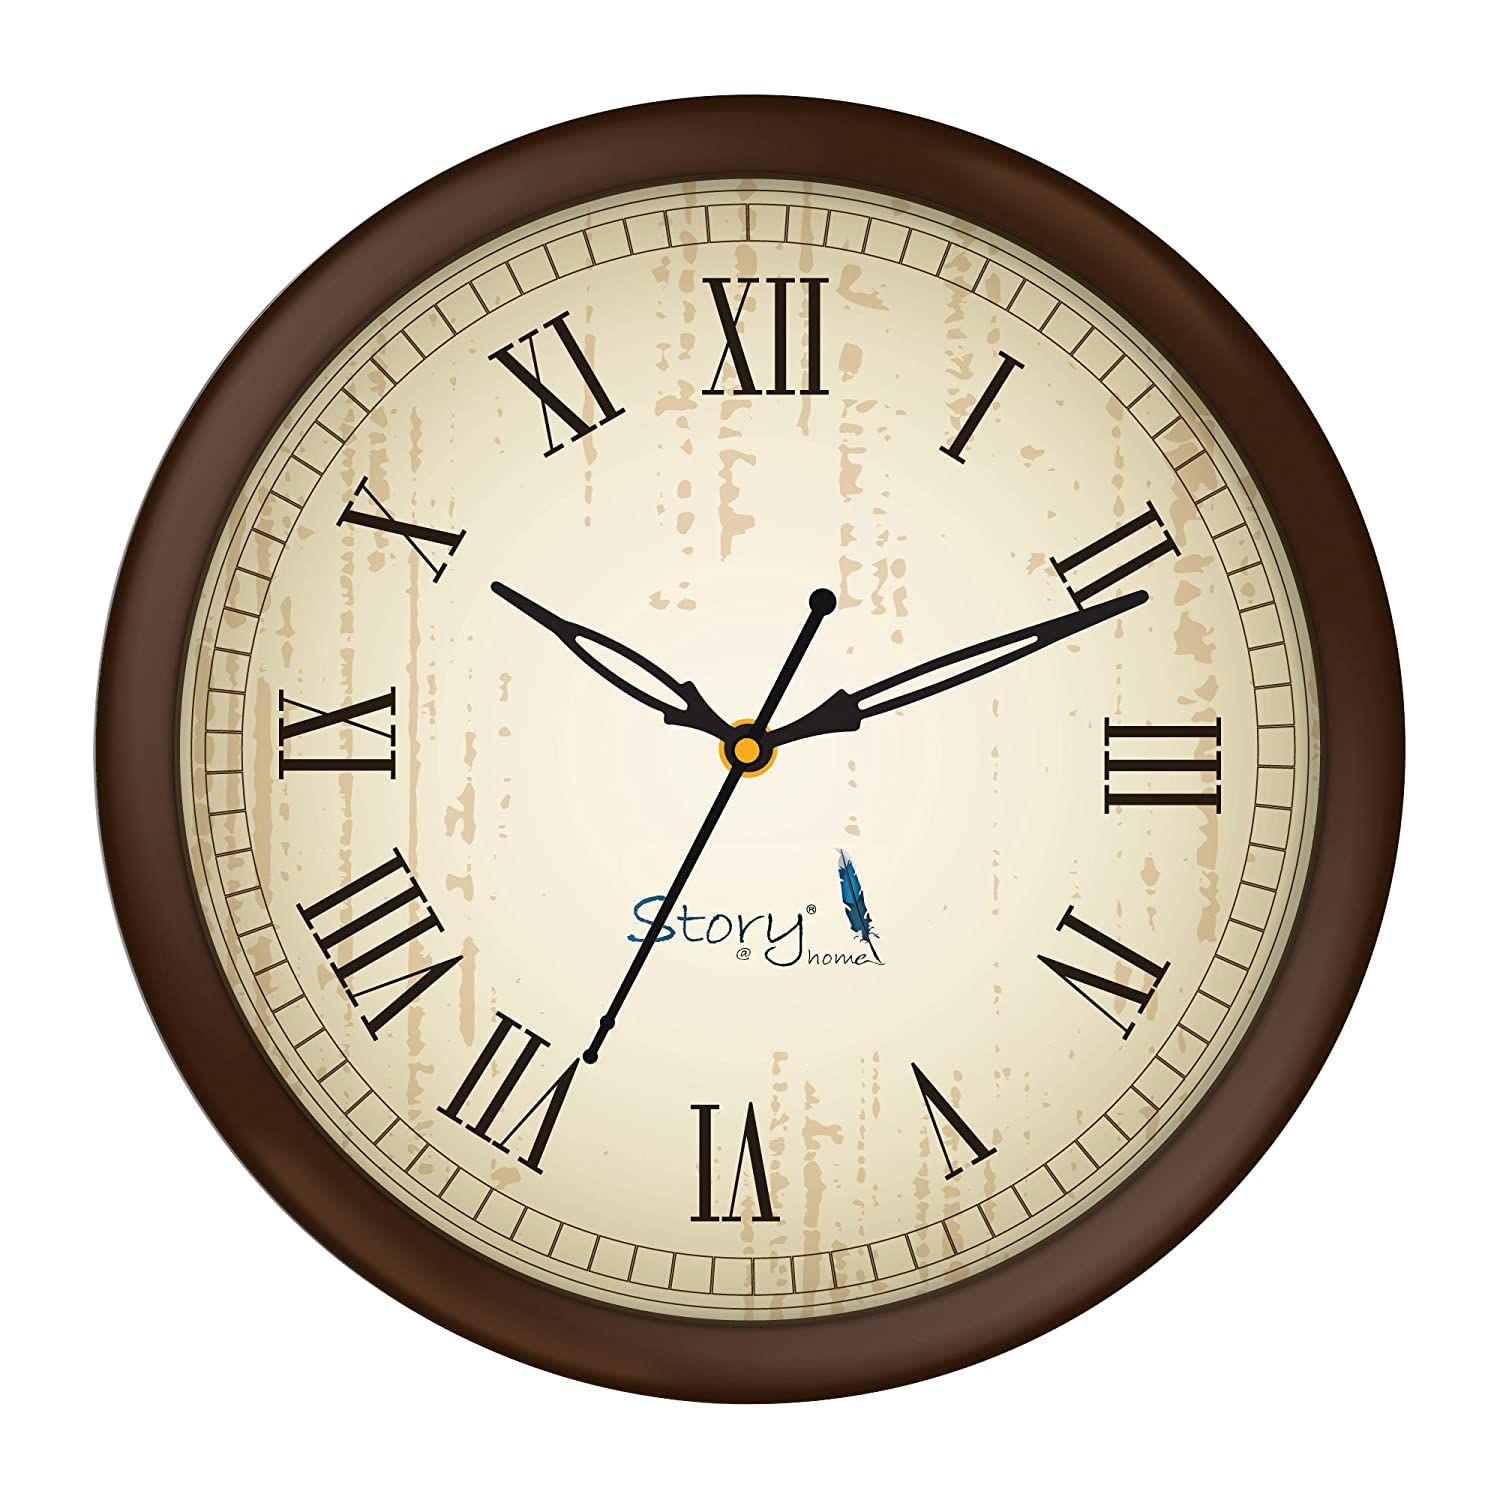 Story@Home 10-inch Round Shape Wall Clock with Glass